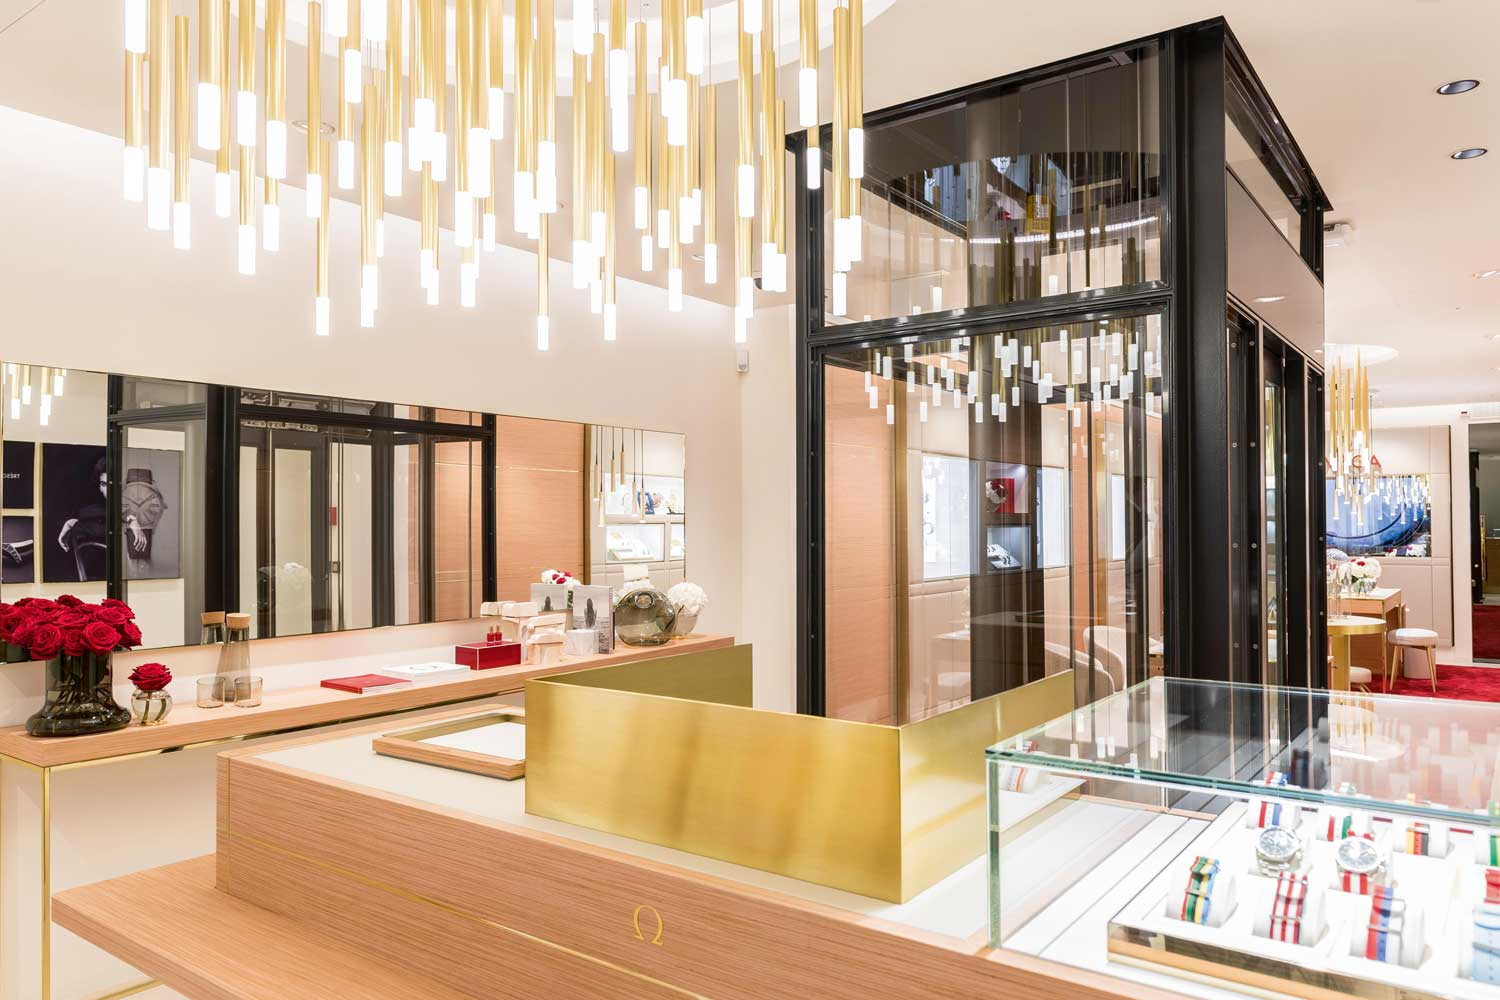 The Omega flagship store in Bern